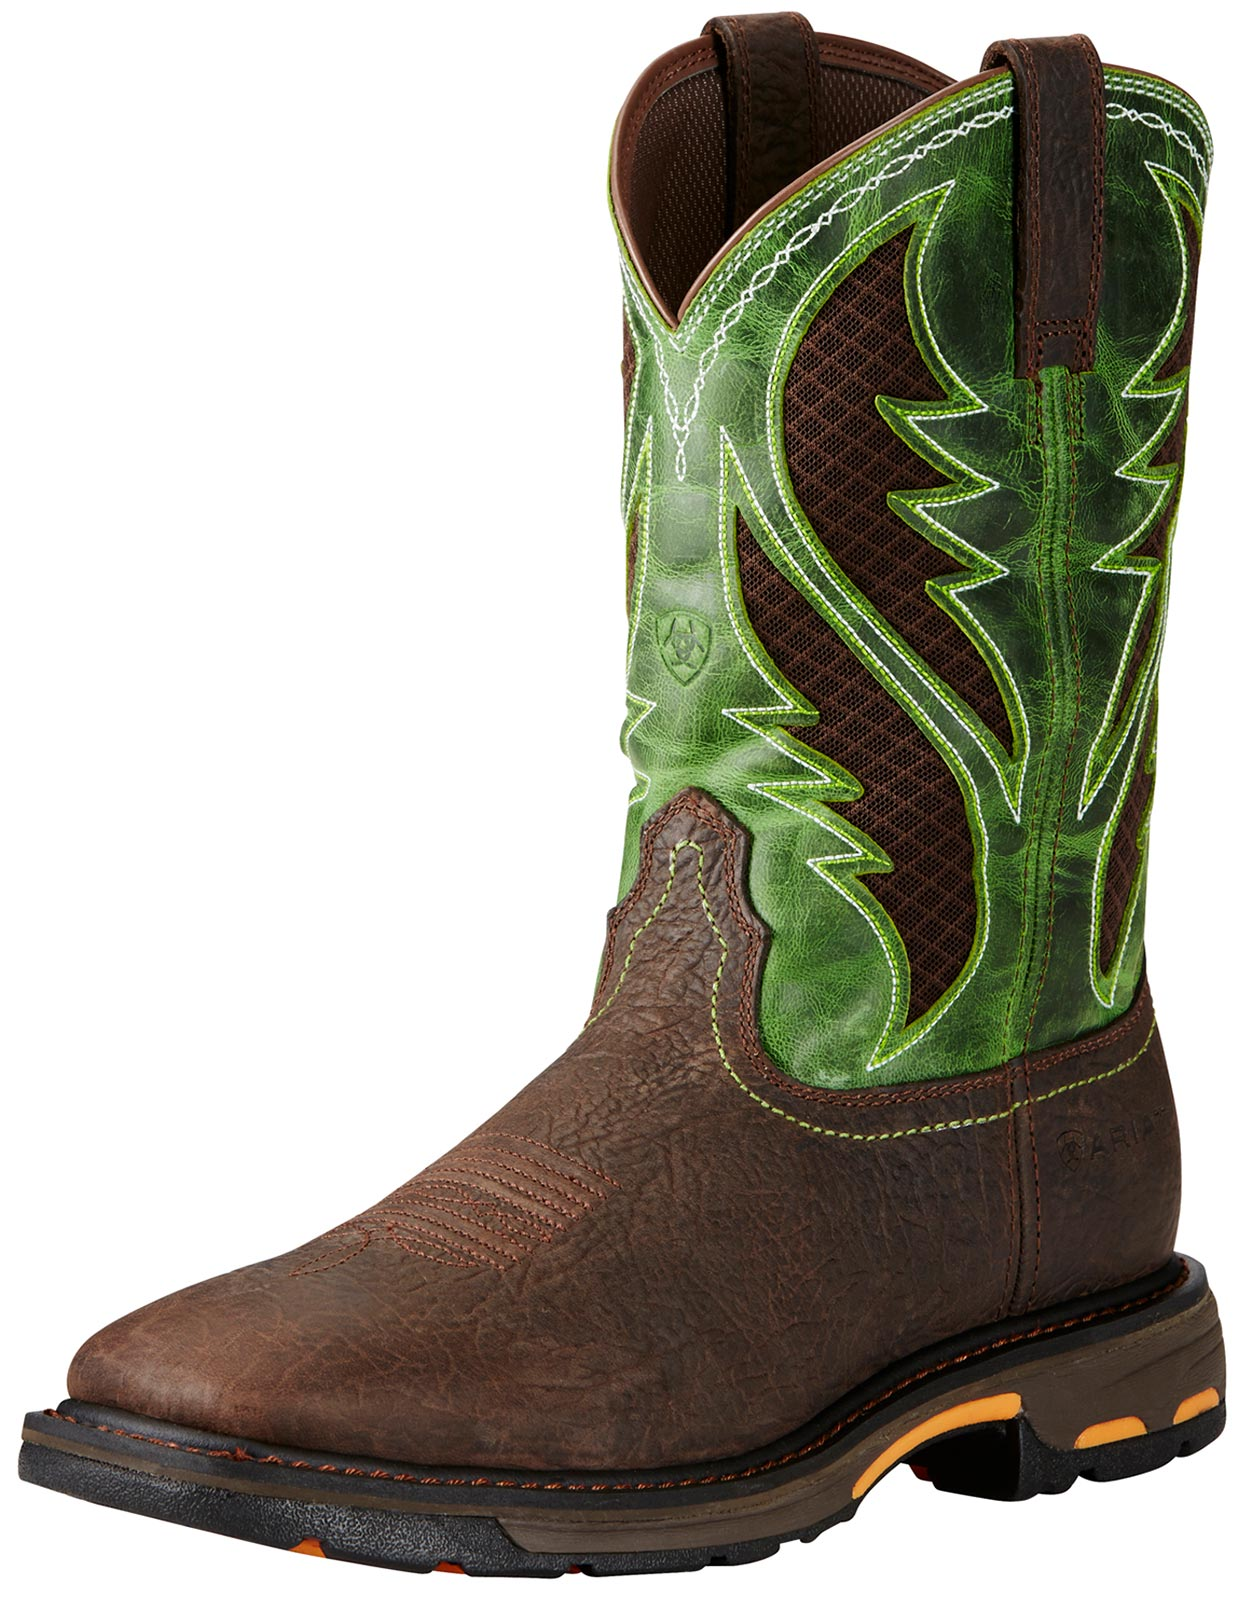 Ariat Men's Workhog Venttek 11